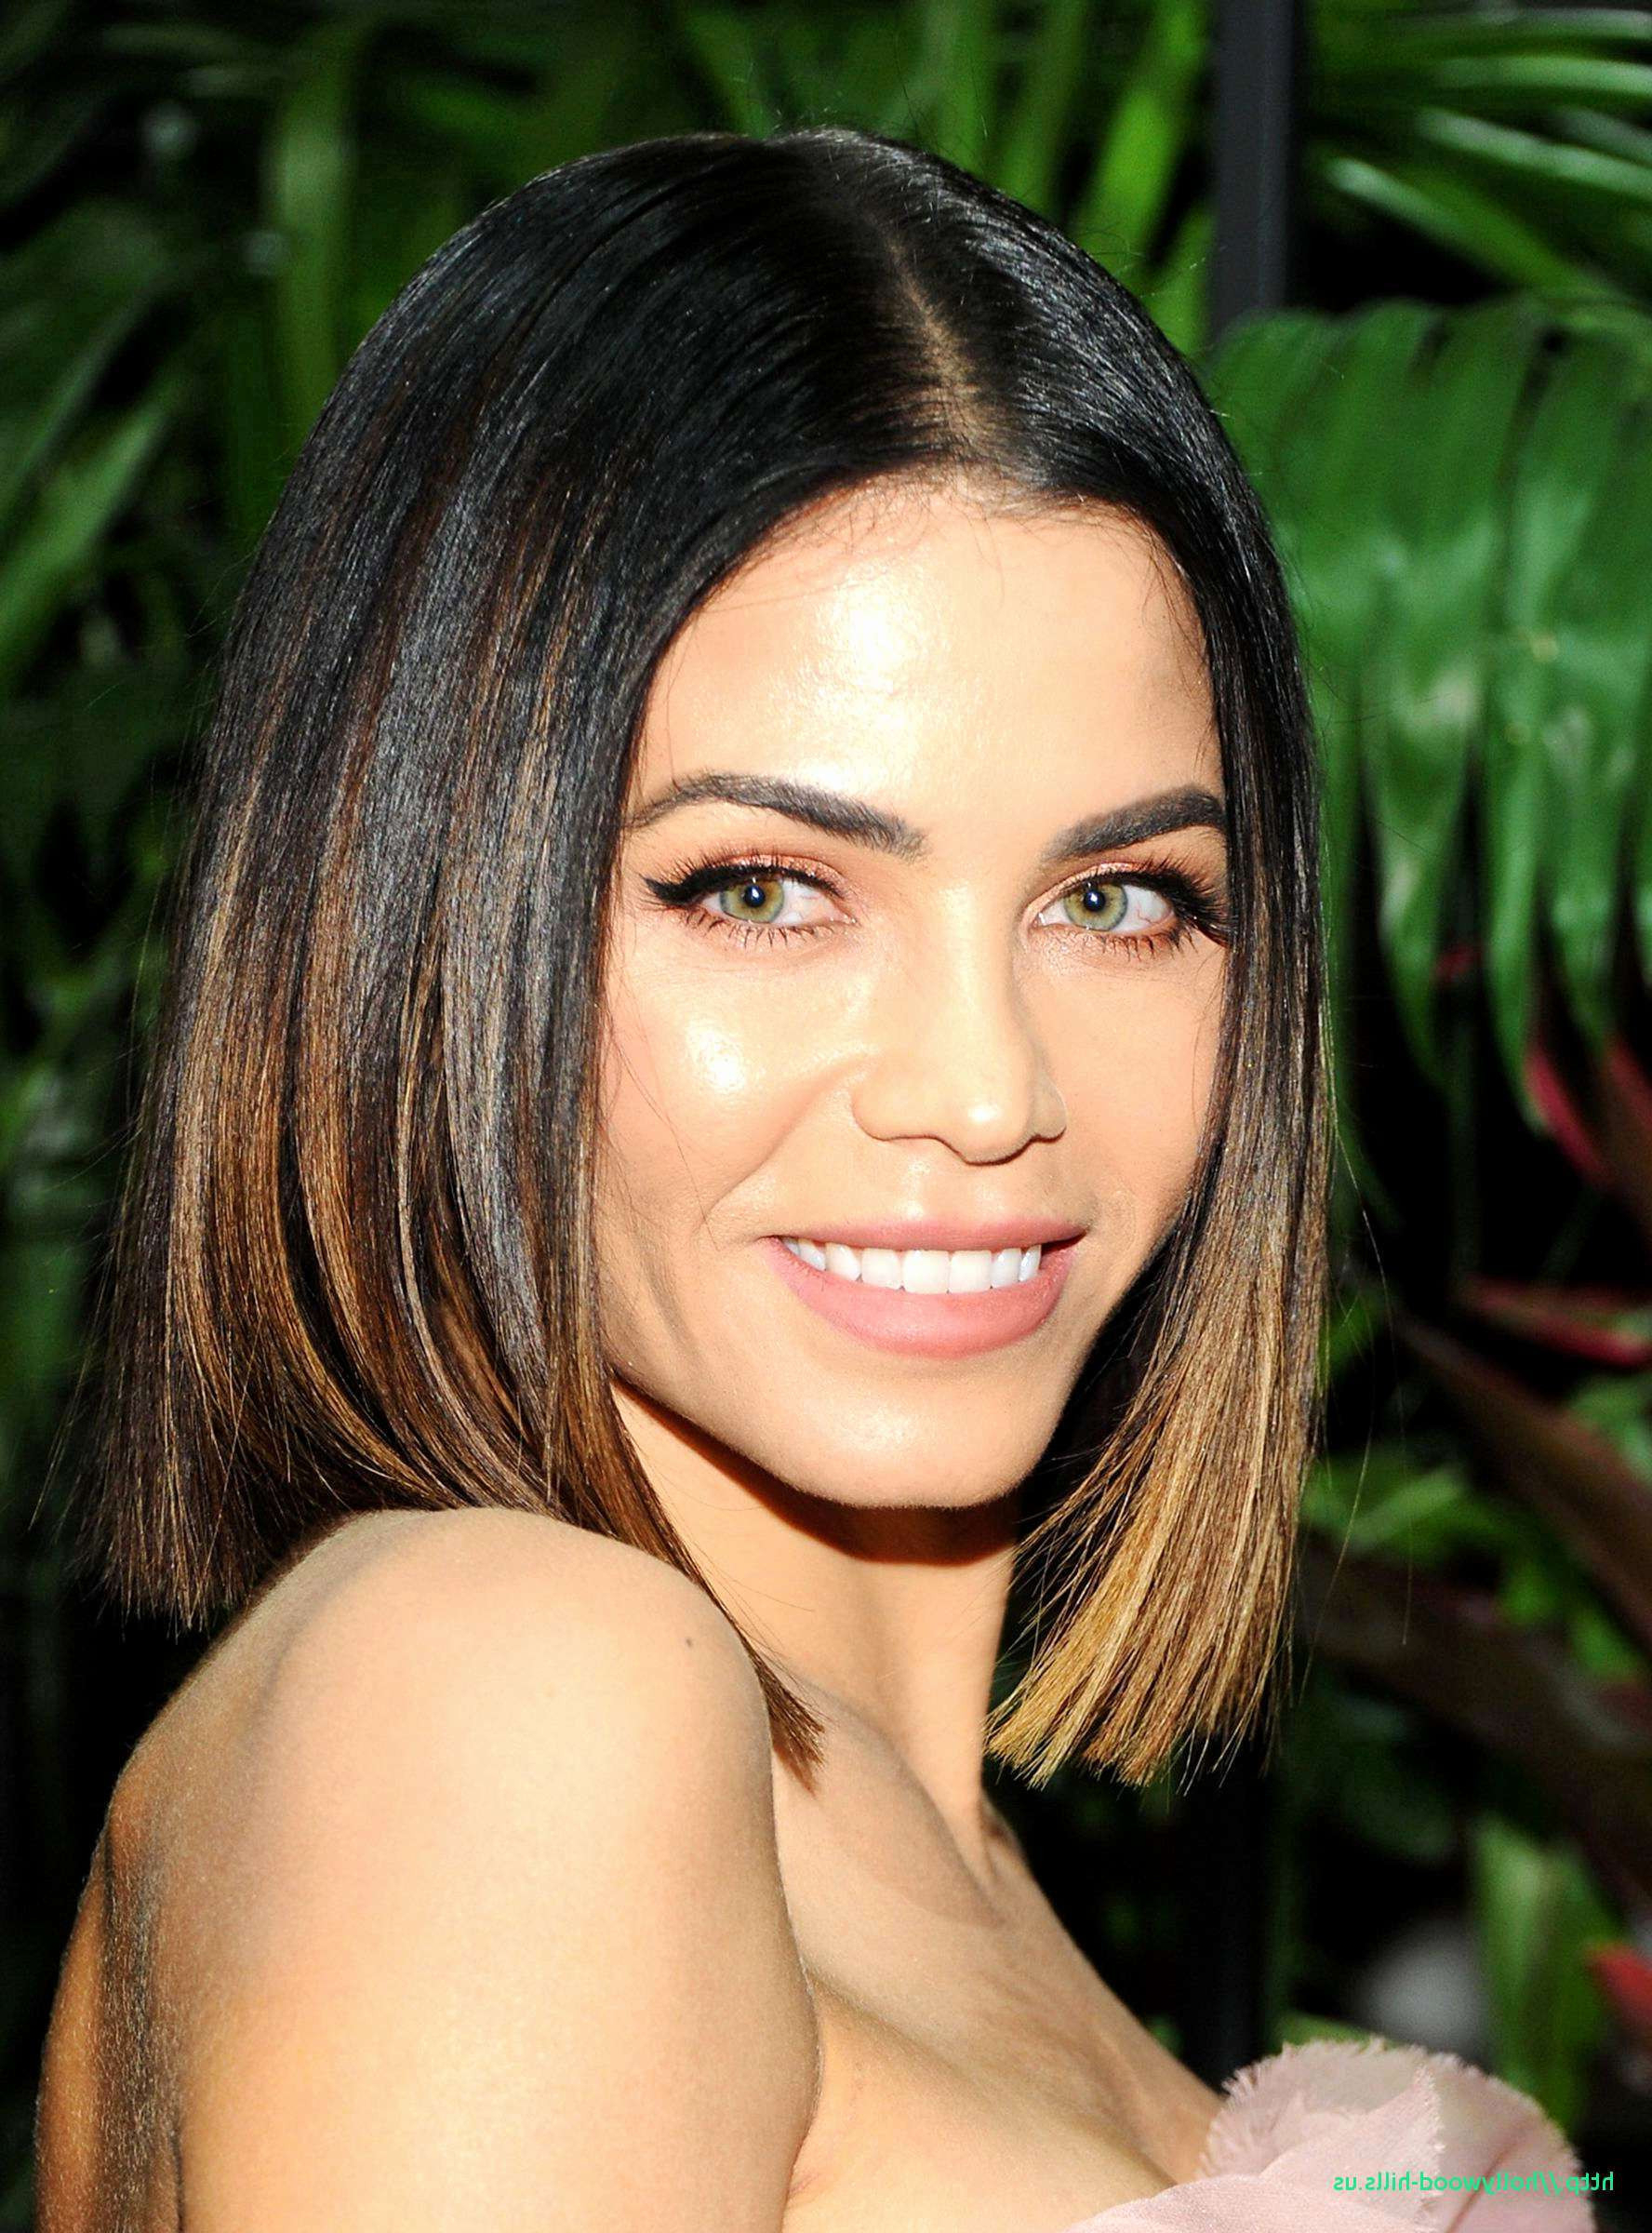 Unique Cute Short Hairstyles For Thin Hair – Uternity With Cute Short Hairstyles For Thin Hair (View 14 of 25)